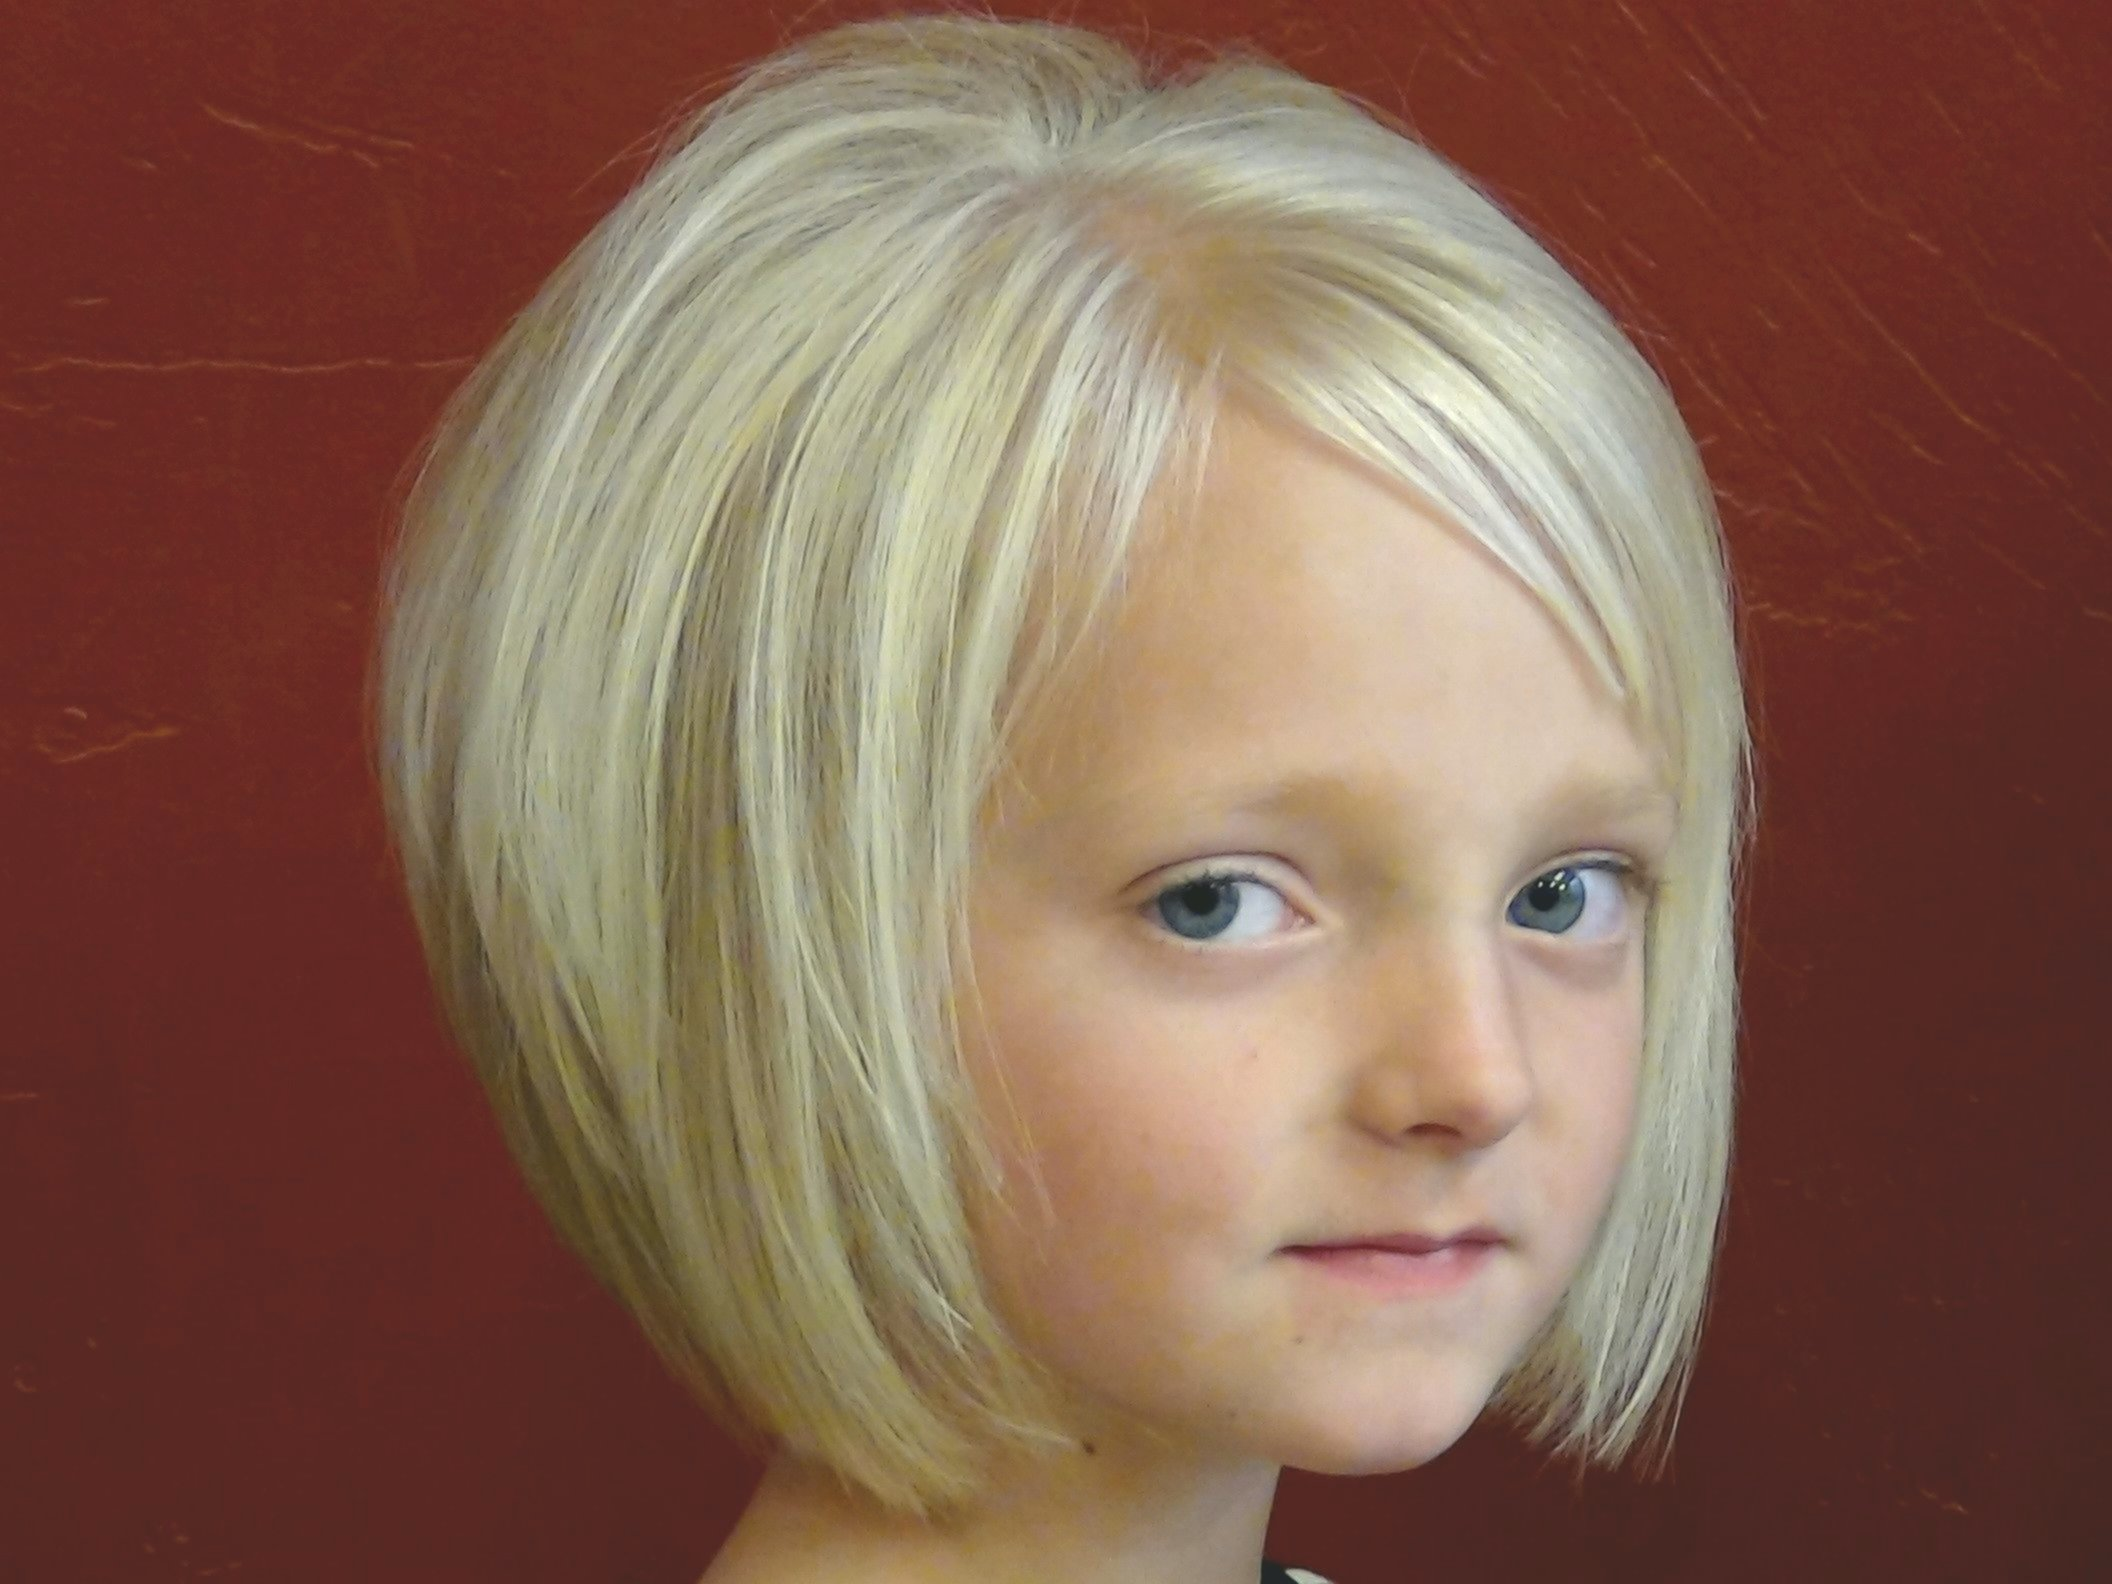 Best of Haircut Girl Inspiration - Sensational Haircut Girl Architecture